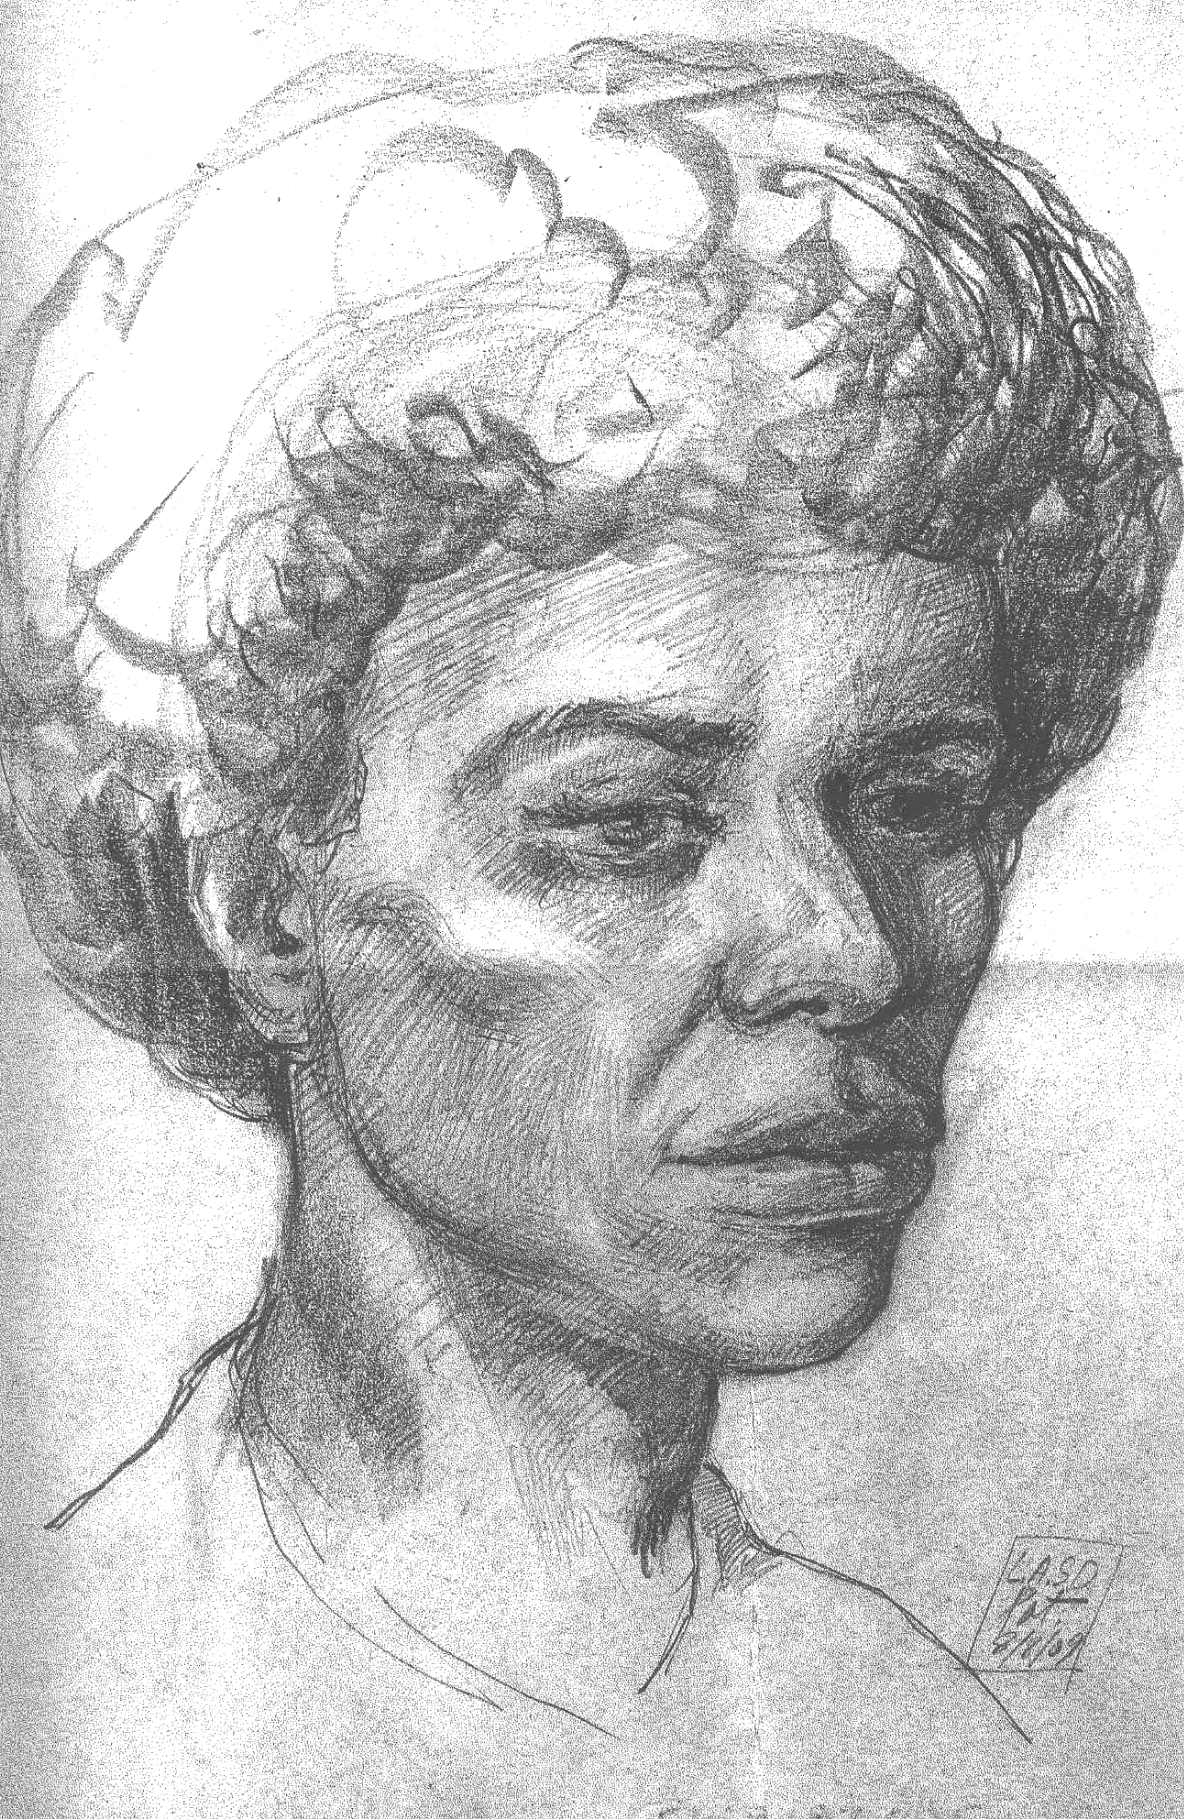 Riverside County Jane Doe (Younger victim)